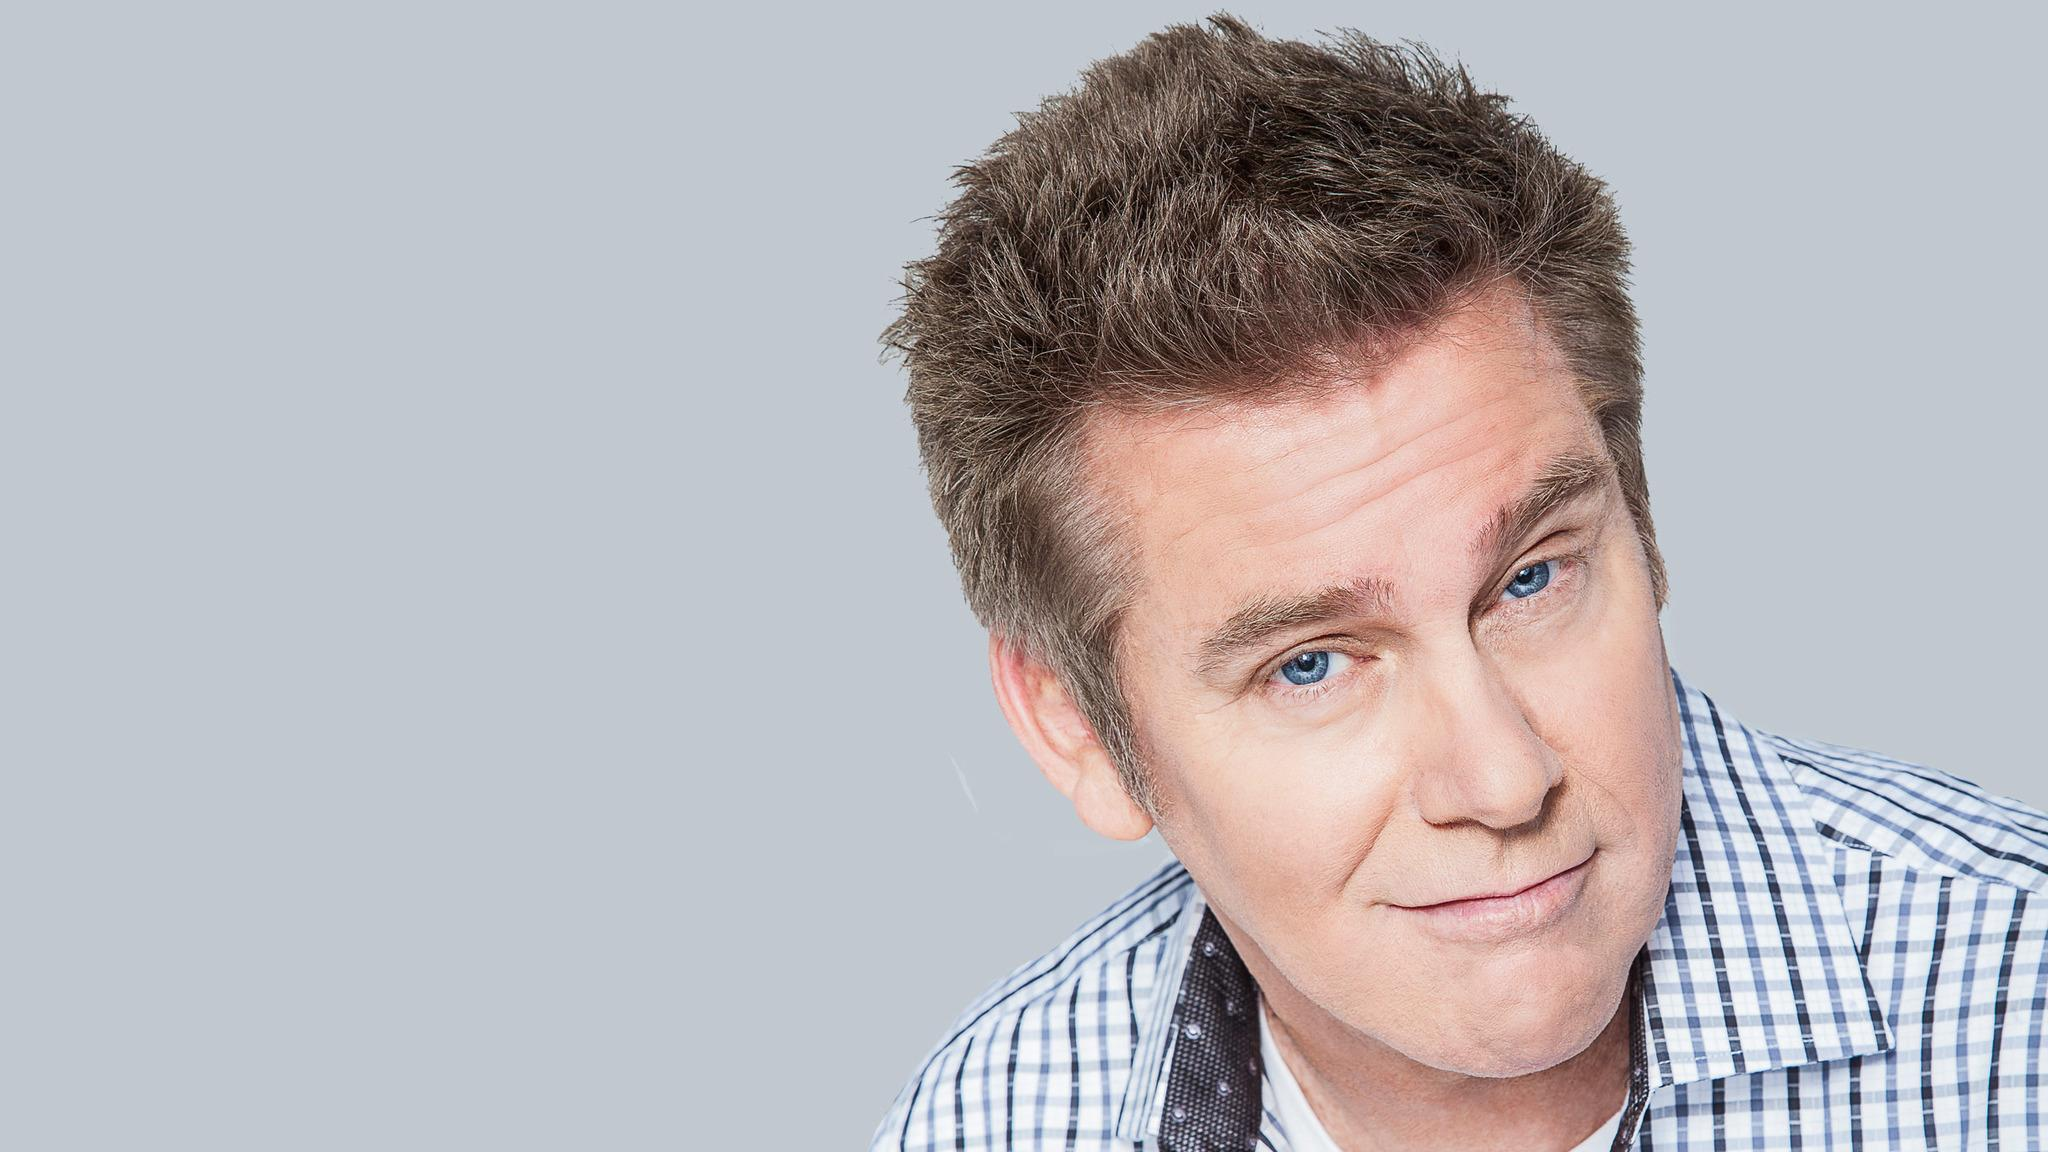 Brian Regan at Shubert Theatre